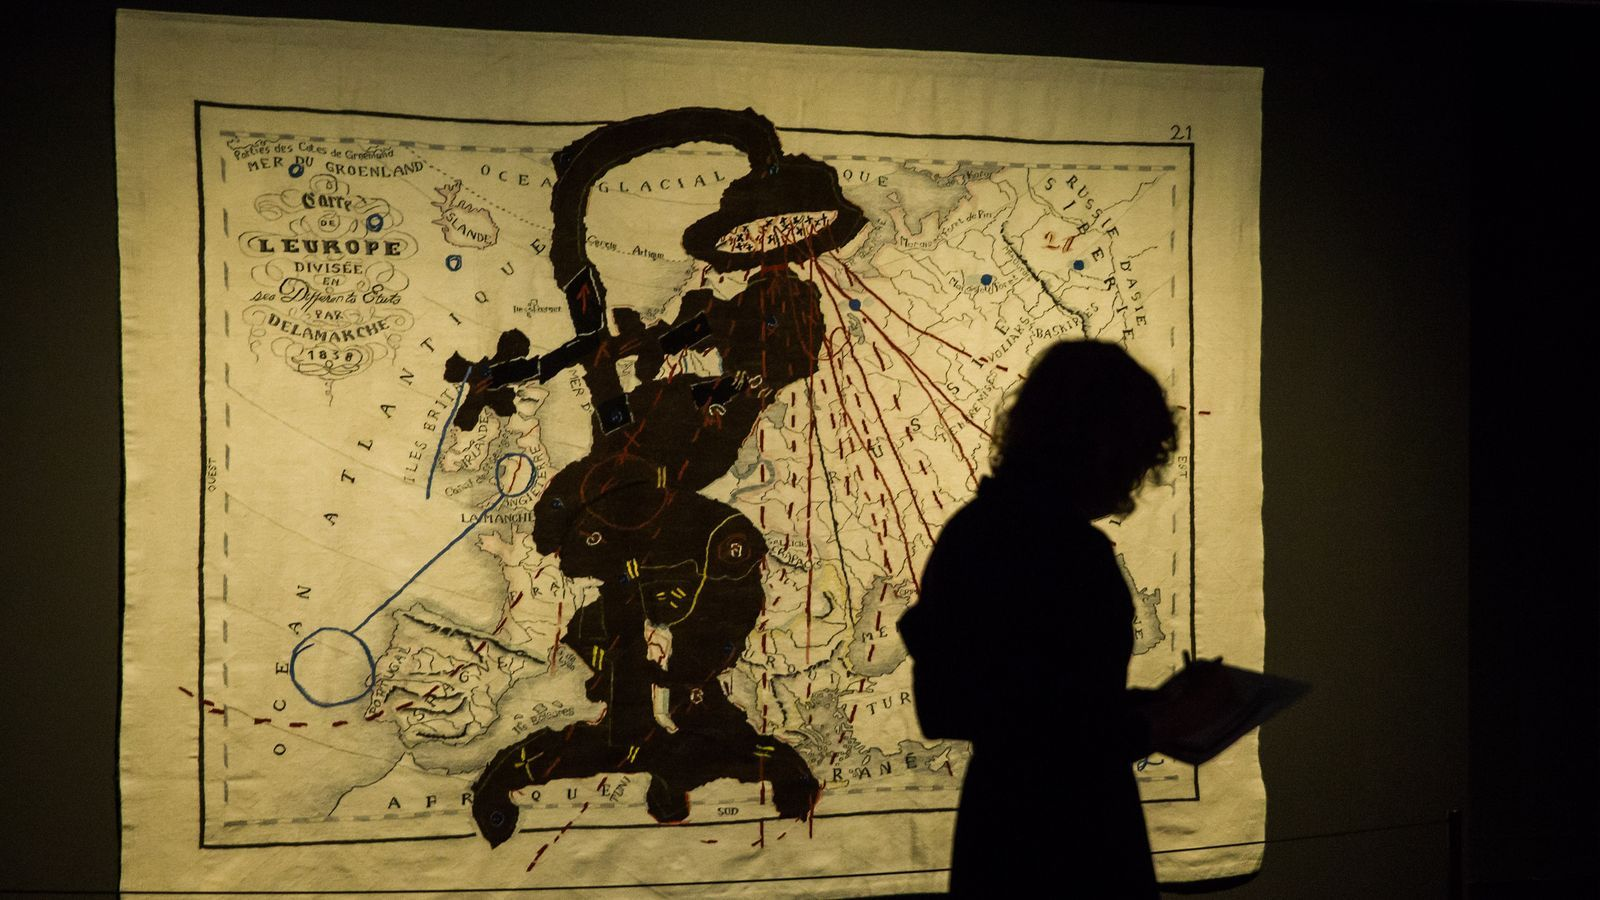 L'exposició de William Kentridge al CCCB